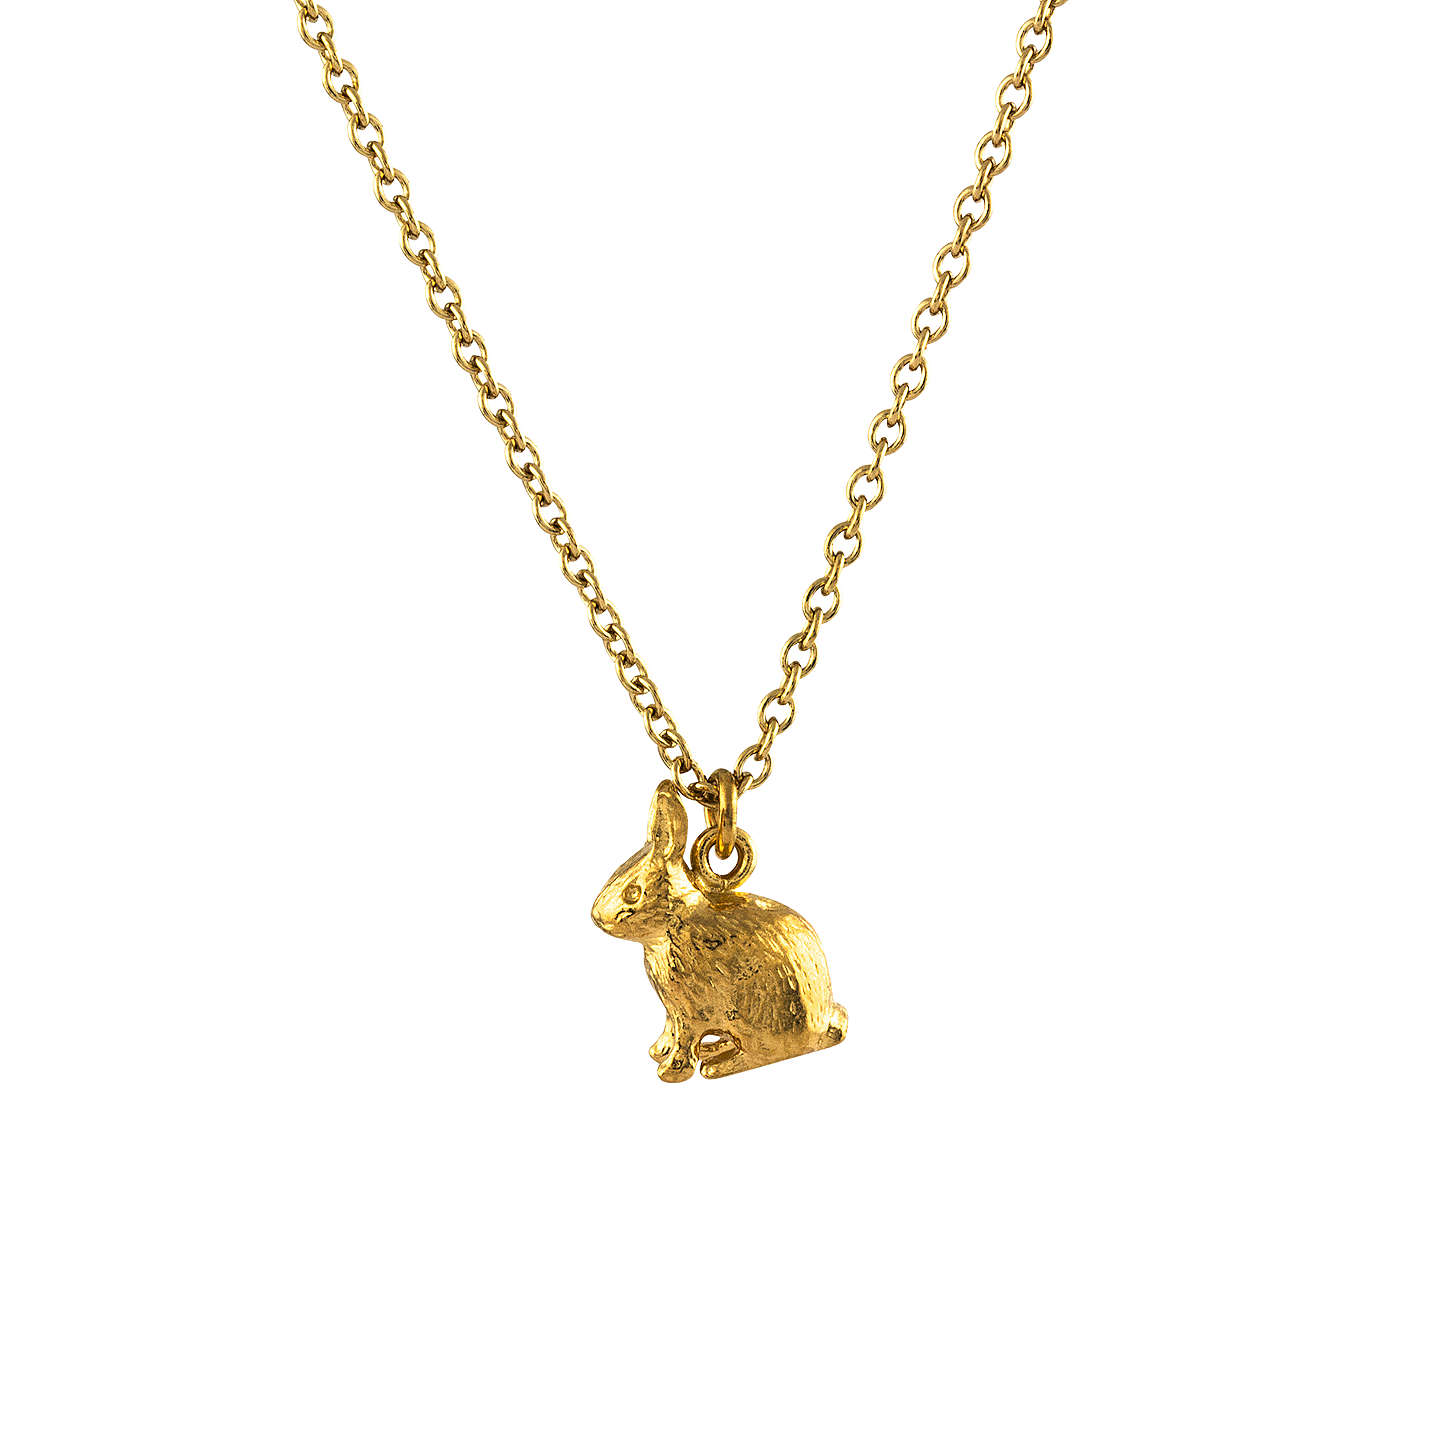 Alex monroe 22ct gold plated sterling silver sitting bunny pendant buyalex monroe 22ct gold plated sterling silver sitting bunny pendant necklace gold online at johnlewis aloadofball Images